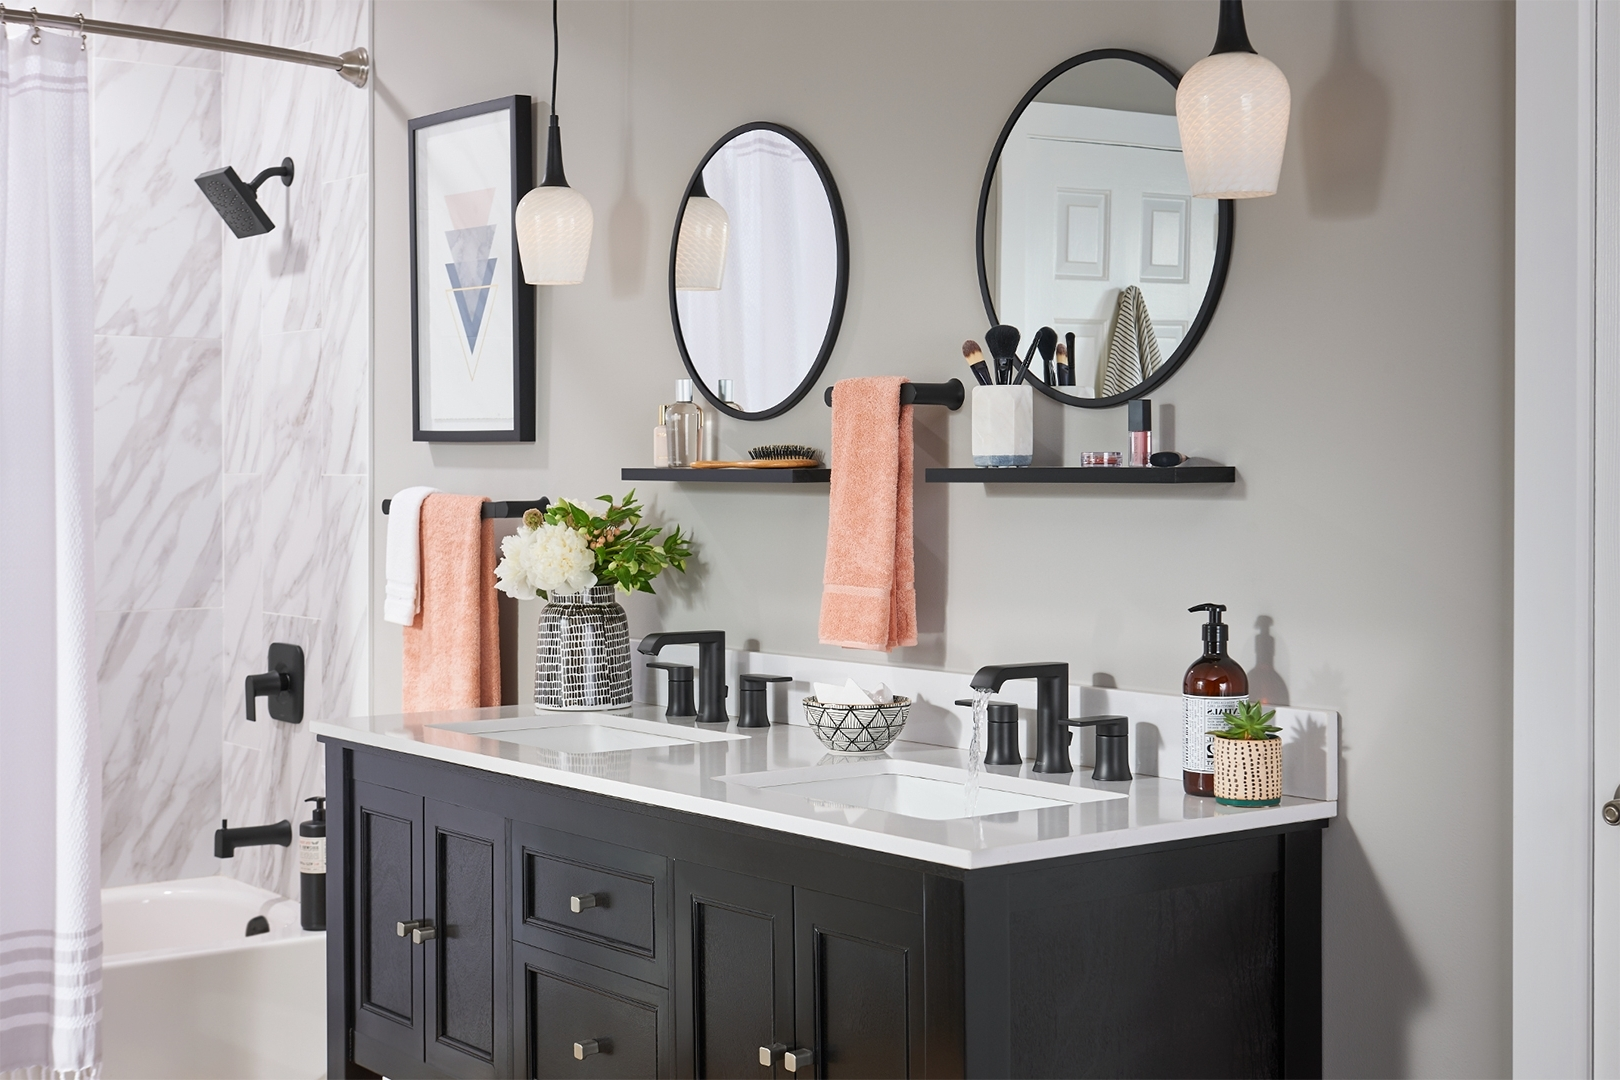 2019 Bathroom Trends | Better Homes & Gardens Ensuite Bathroom 2019